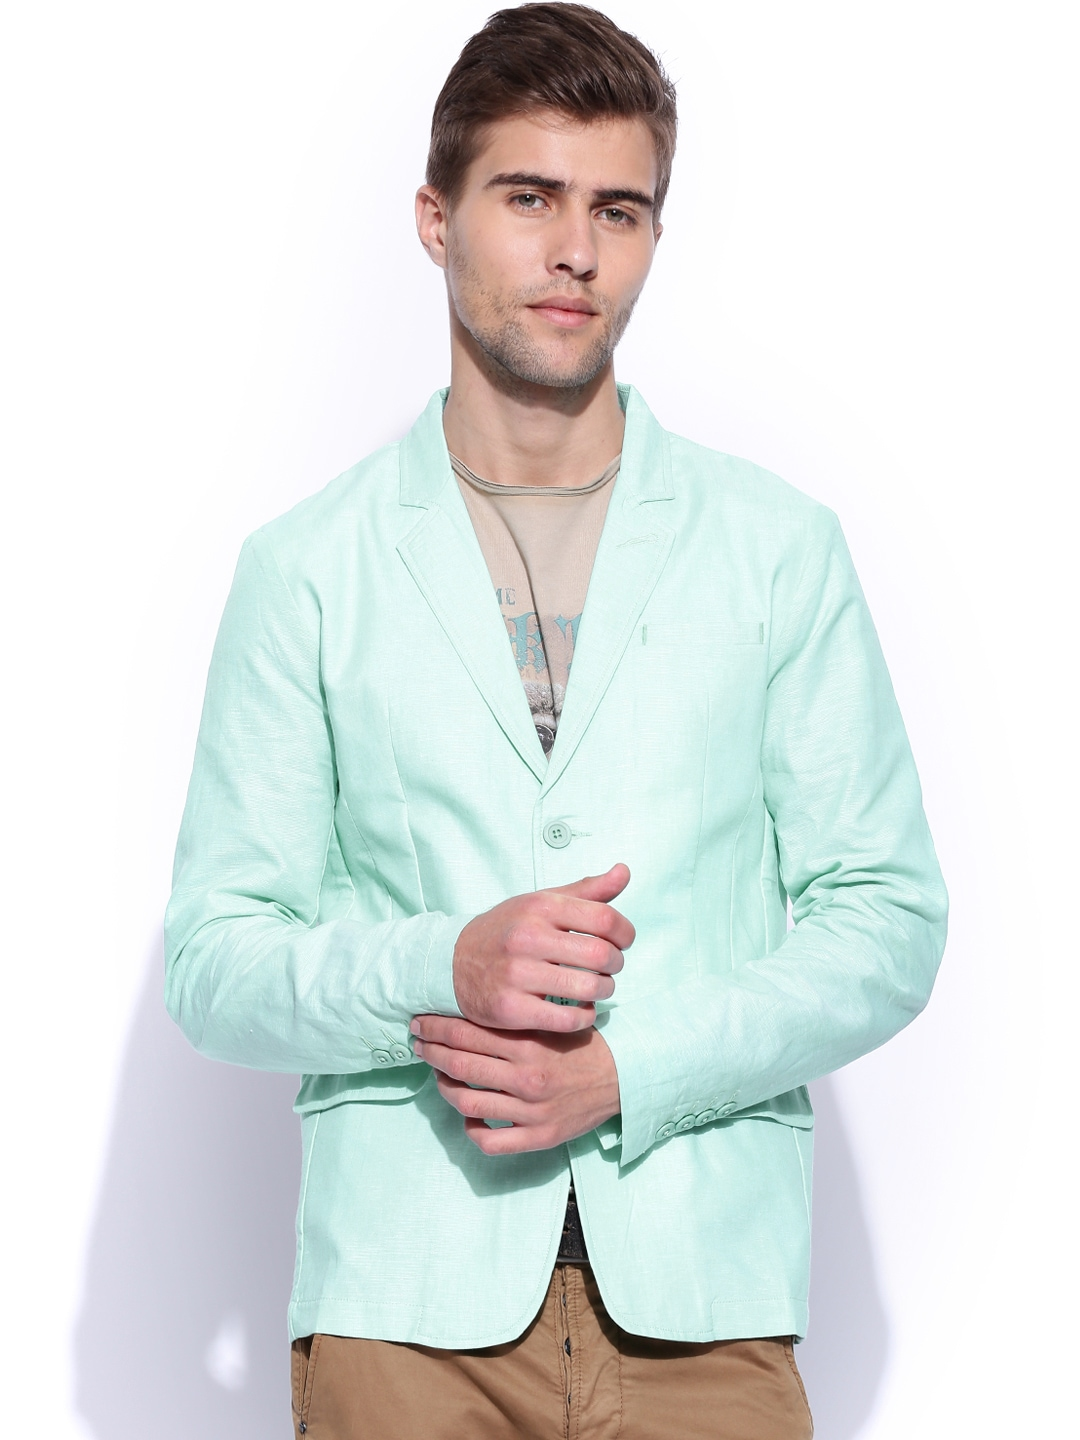 Lime green suits Find the largest selection of green mens suit, lime green suits, men suit silver on sale at SuitUSA at a cheapest rate. REISS mens sale an unrivalled collection of stylish men's mens sale. See more ideas about Mint blazer, Mint jacket and Blue pants outfit. Save on Men s Blazers at JCPenney ae.